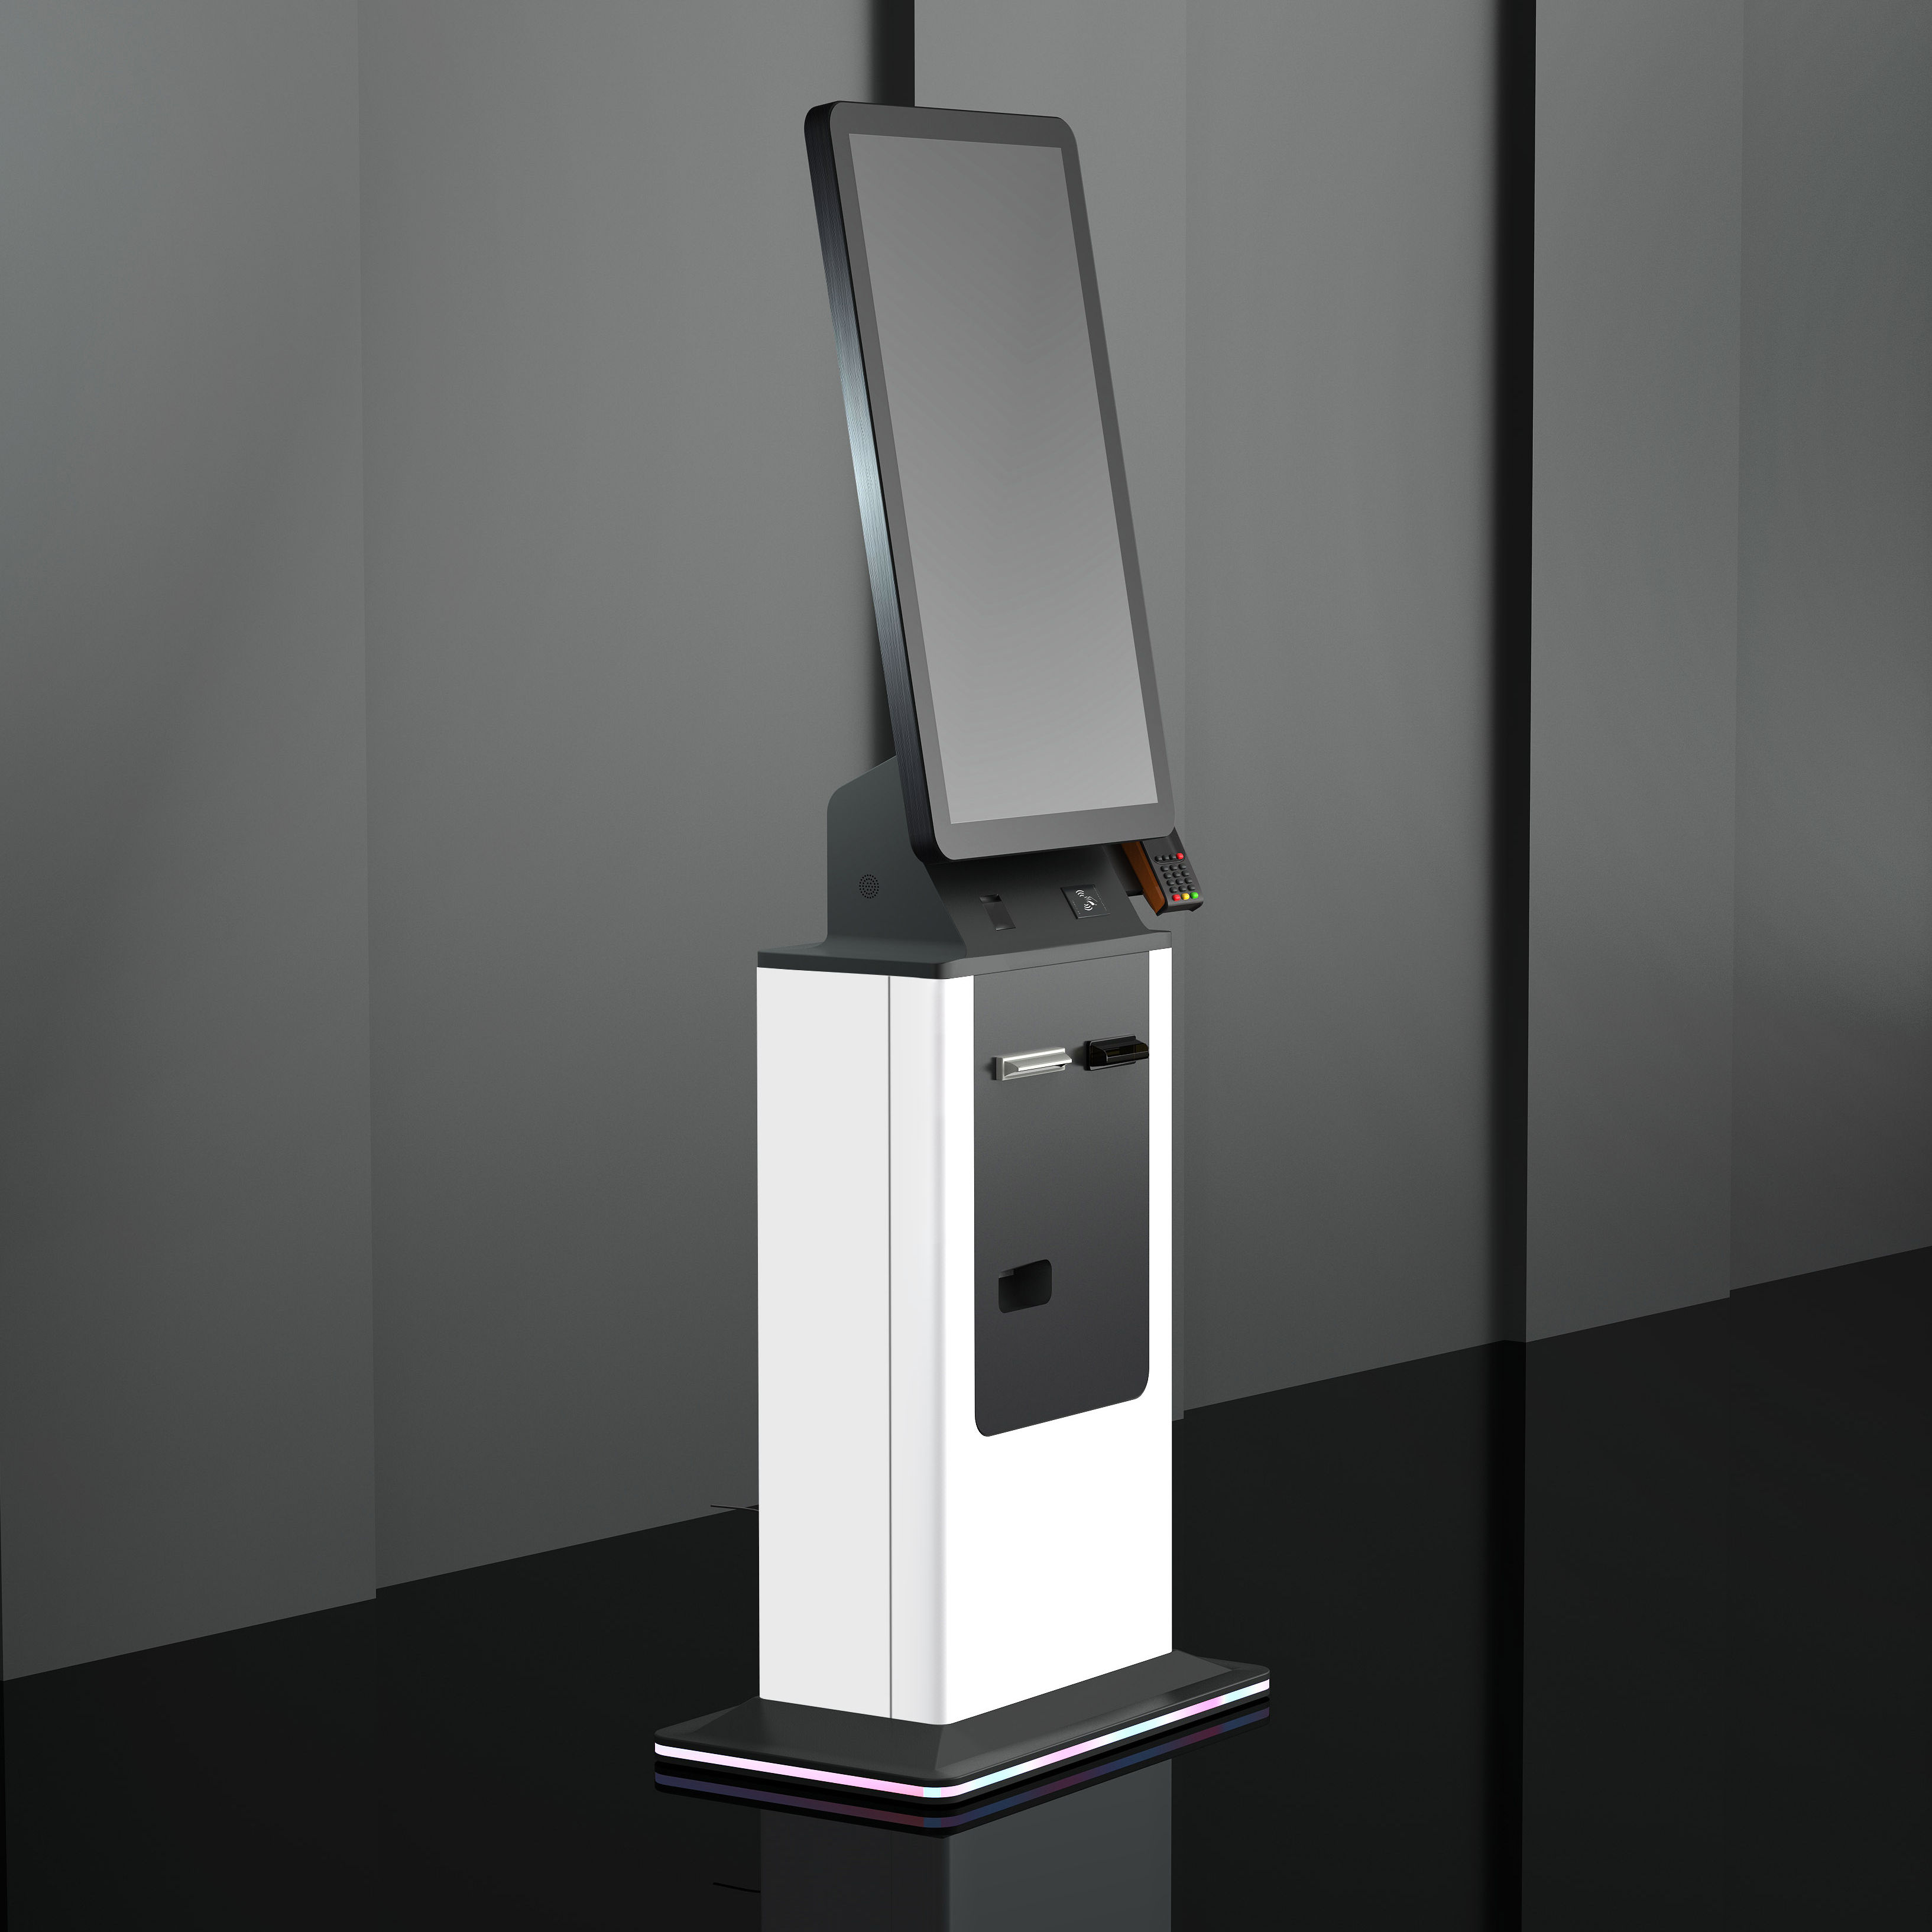 32 inch ticket dispenser self checkout machine queuing system kiosk touch screen floor stand kiosk payment terminal rfid